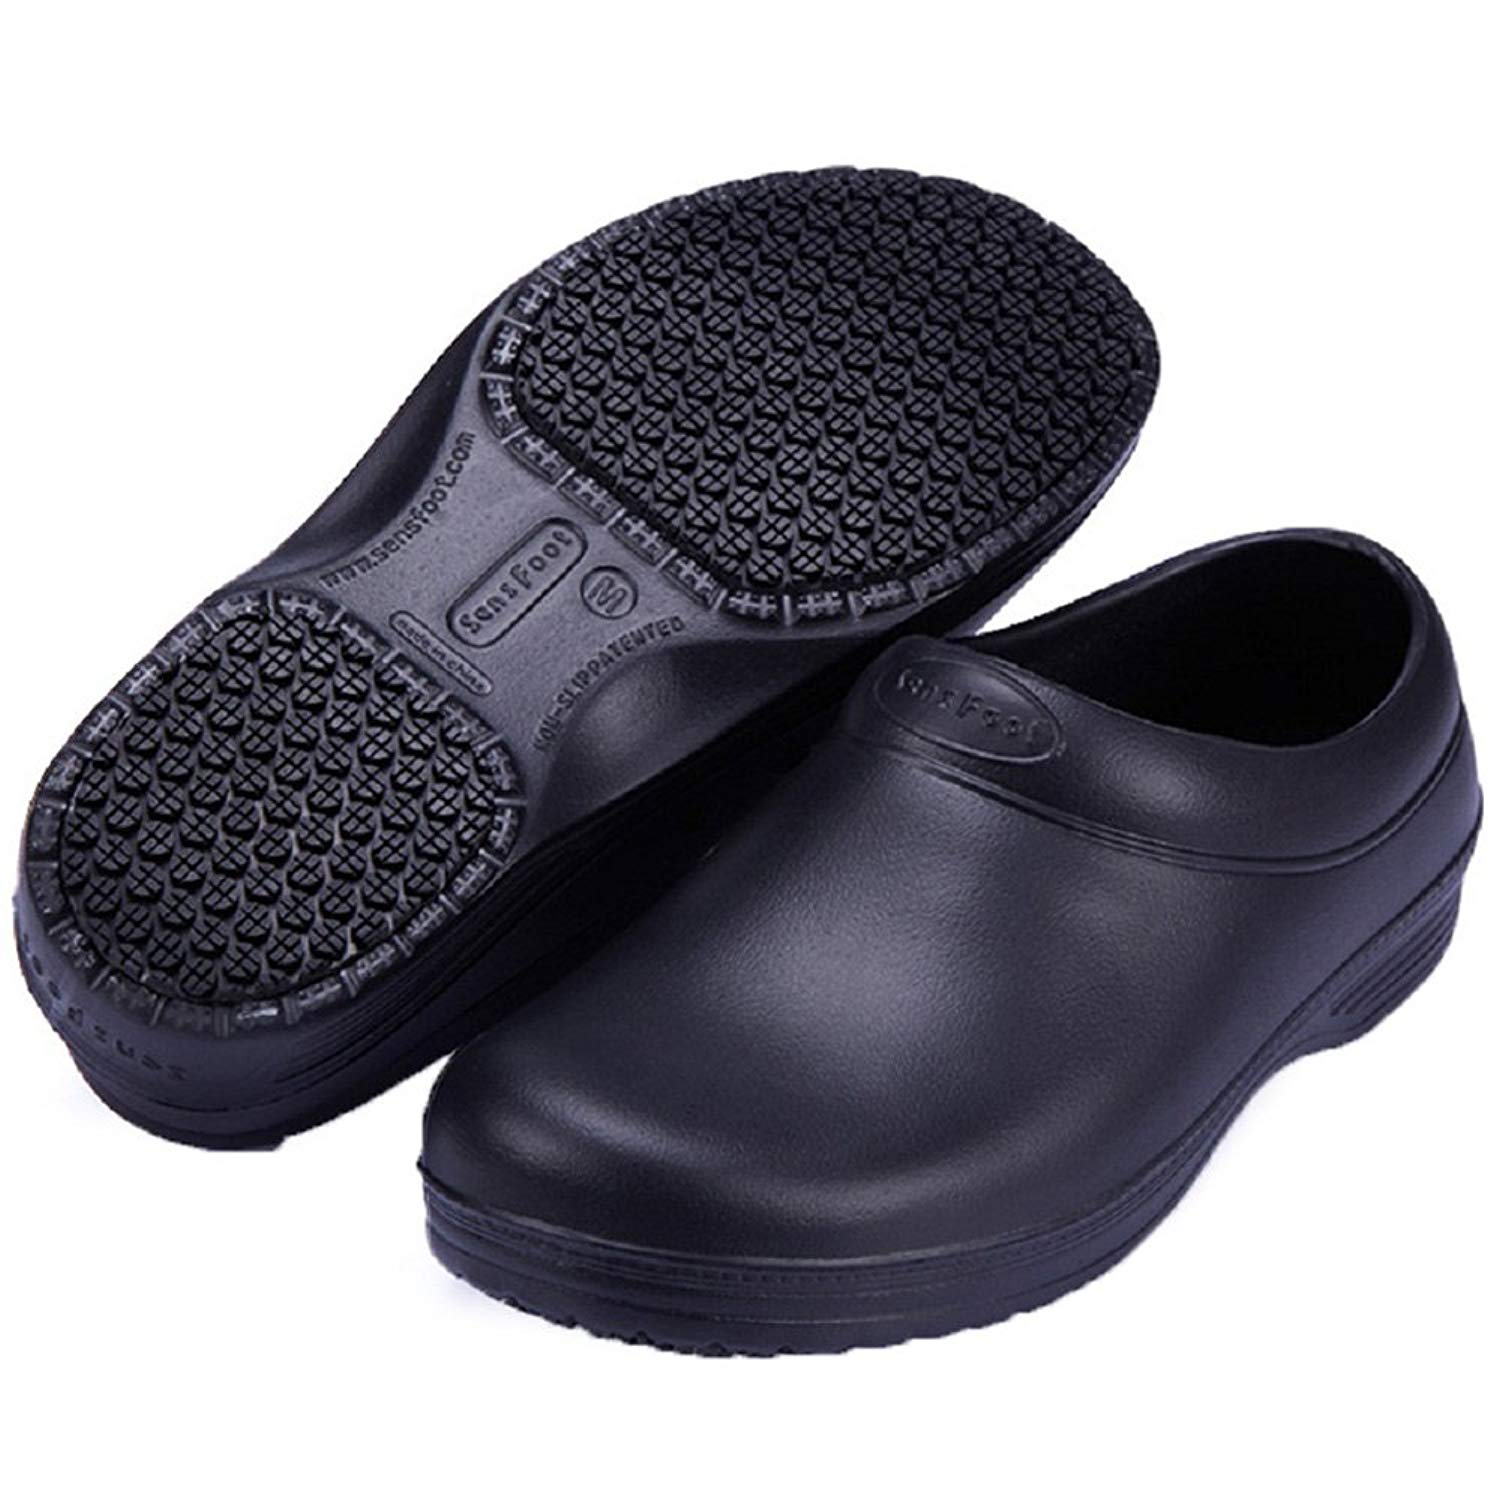 1235c12f847c Get Quotations · Ehomelife Slip Resistant Chef Shoes Clogs Kitchen Work  Shoes SW-05 Unisex Anti-Slip